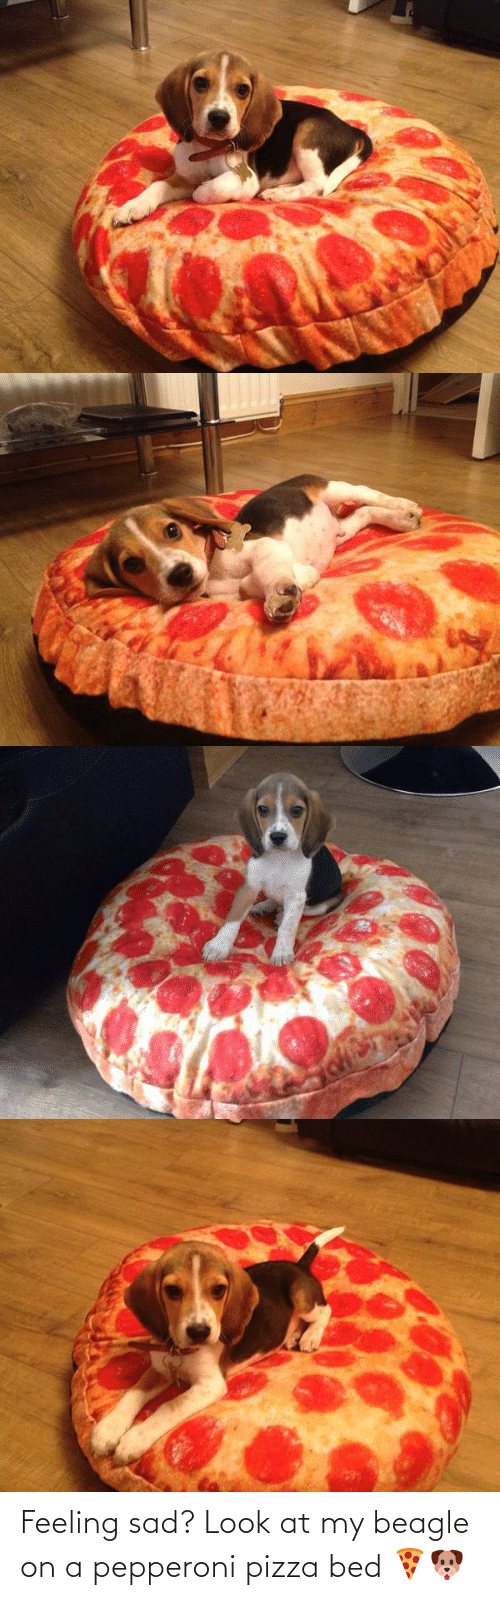 Sad: Feeling sad? Look at my beagle on a pepperoni pizza bed 🍕🐶